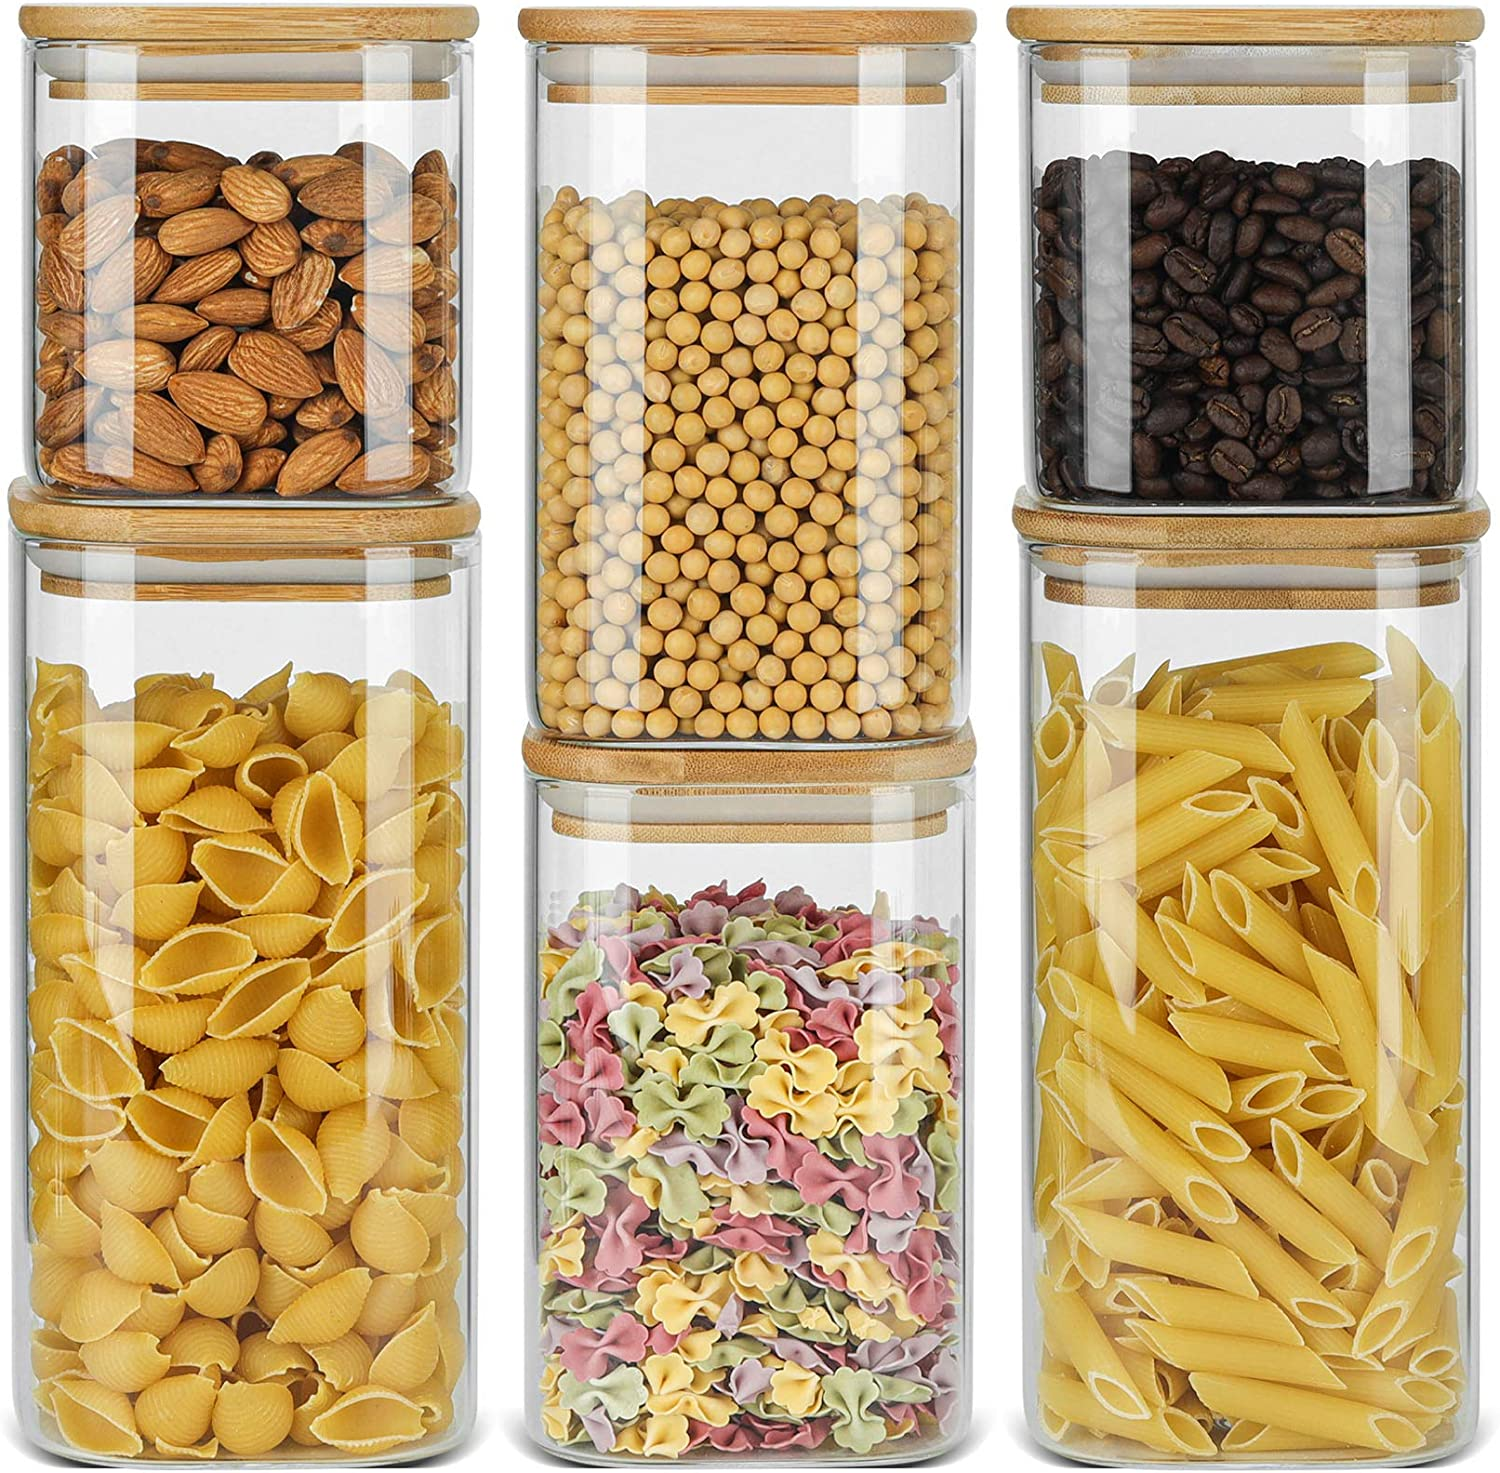 ComSaf Airtight Glass Storage Canister with Bamboo Lid (22oz/37oz/50oz) Set of 6, Clear Food Storage Container Kitchen Pantry Storage Jar for Flour Cereal Sugar Tea Coffee Beans Snacks, Square